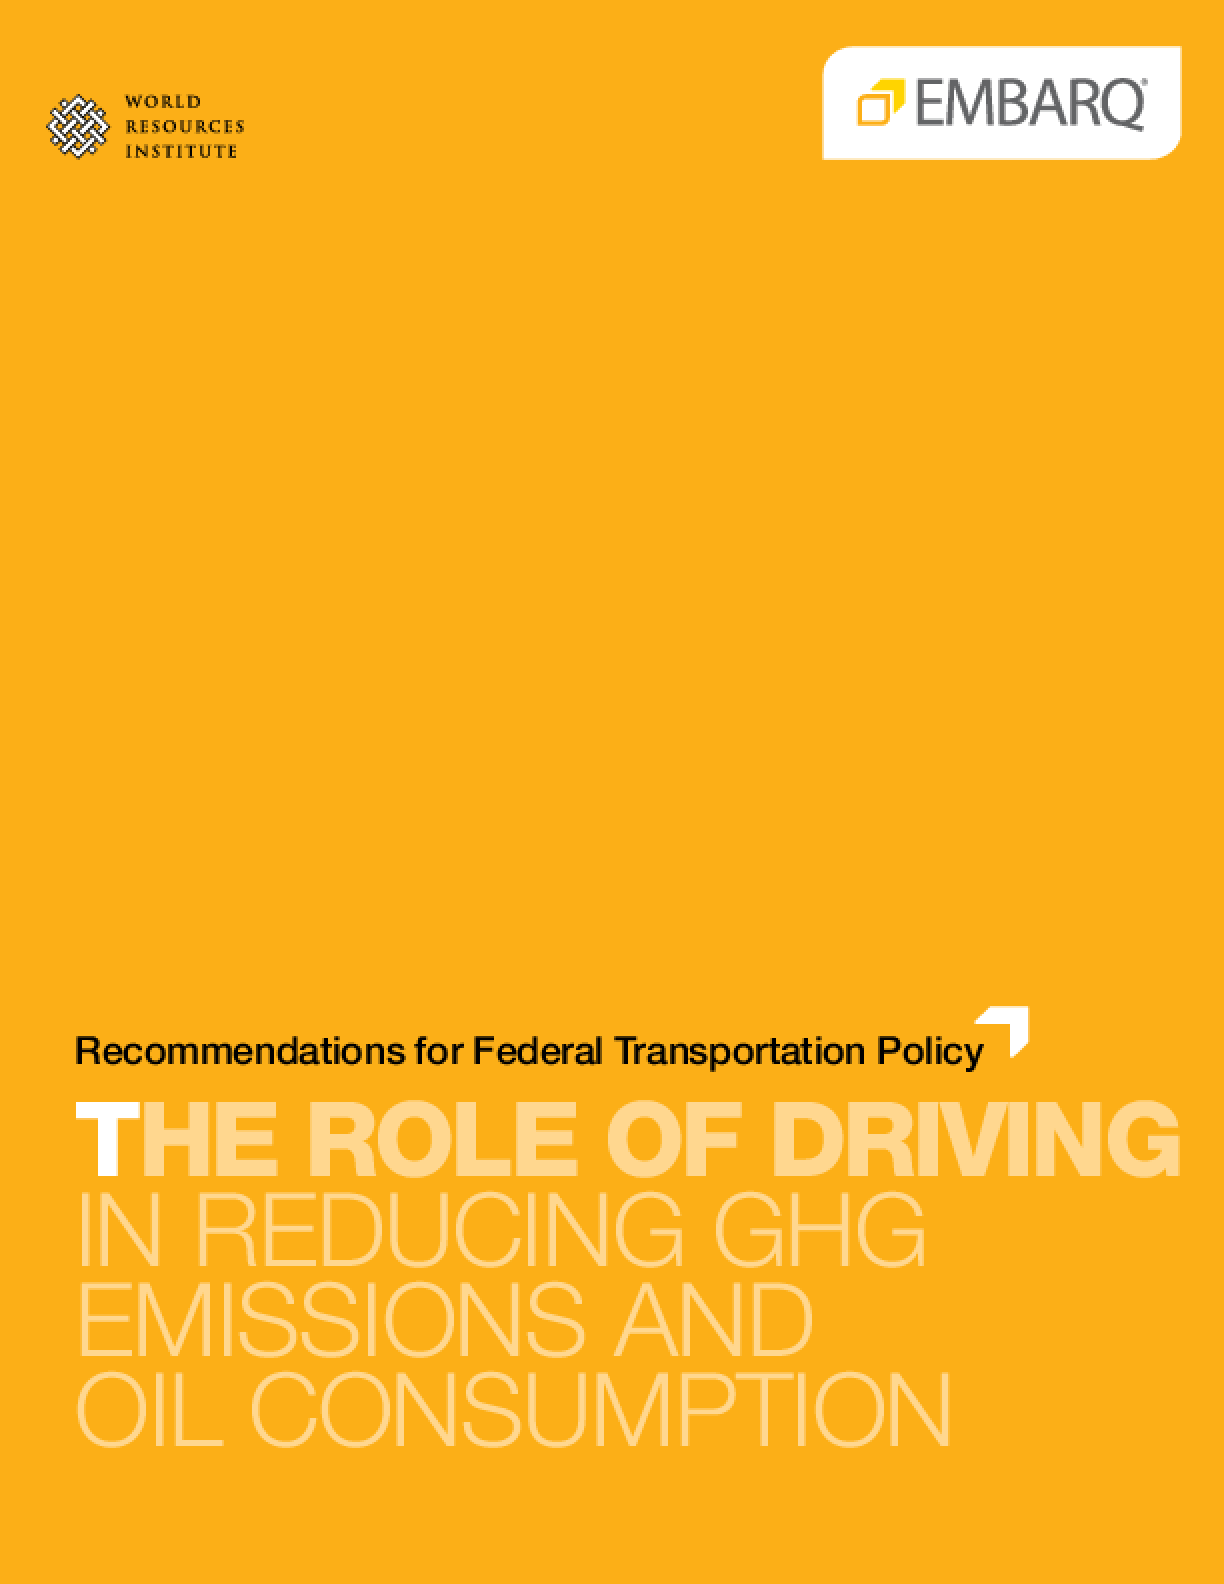 The Role of Driving in Reducing Greenhouse Gas Emissions and Oil Consumption